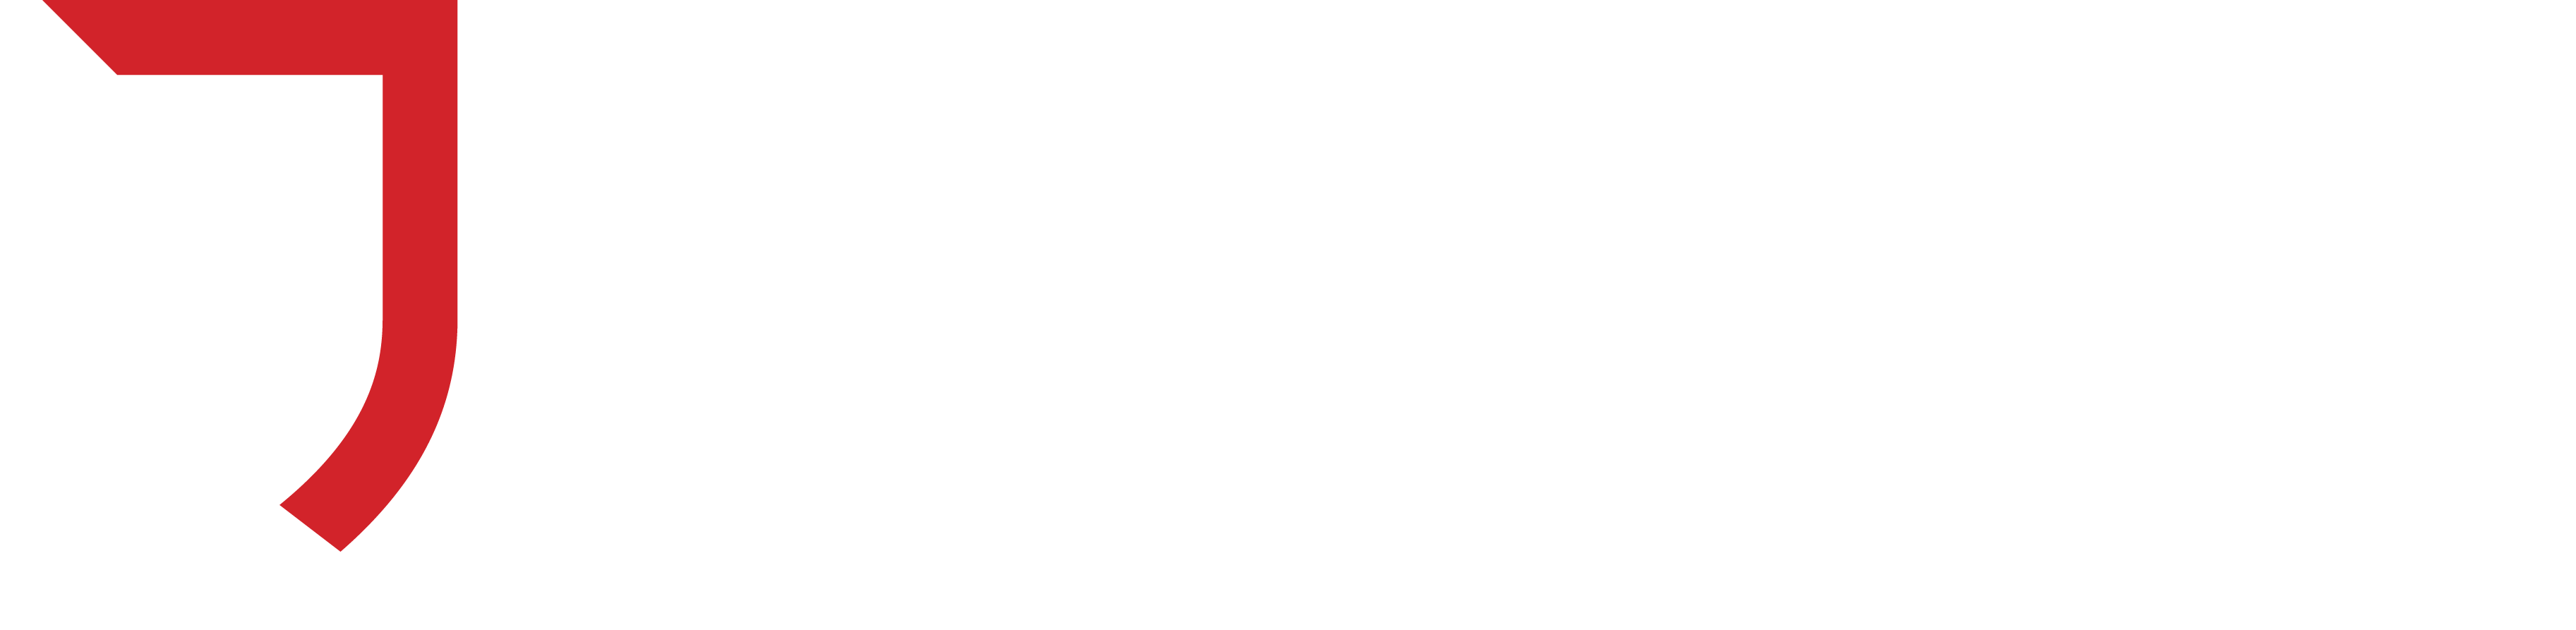 Shield-Cover-Underwriting-Australia-logo-full